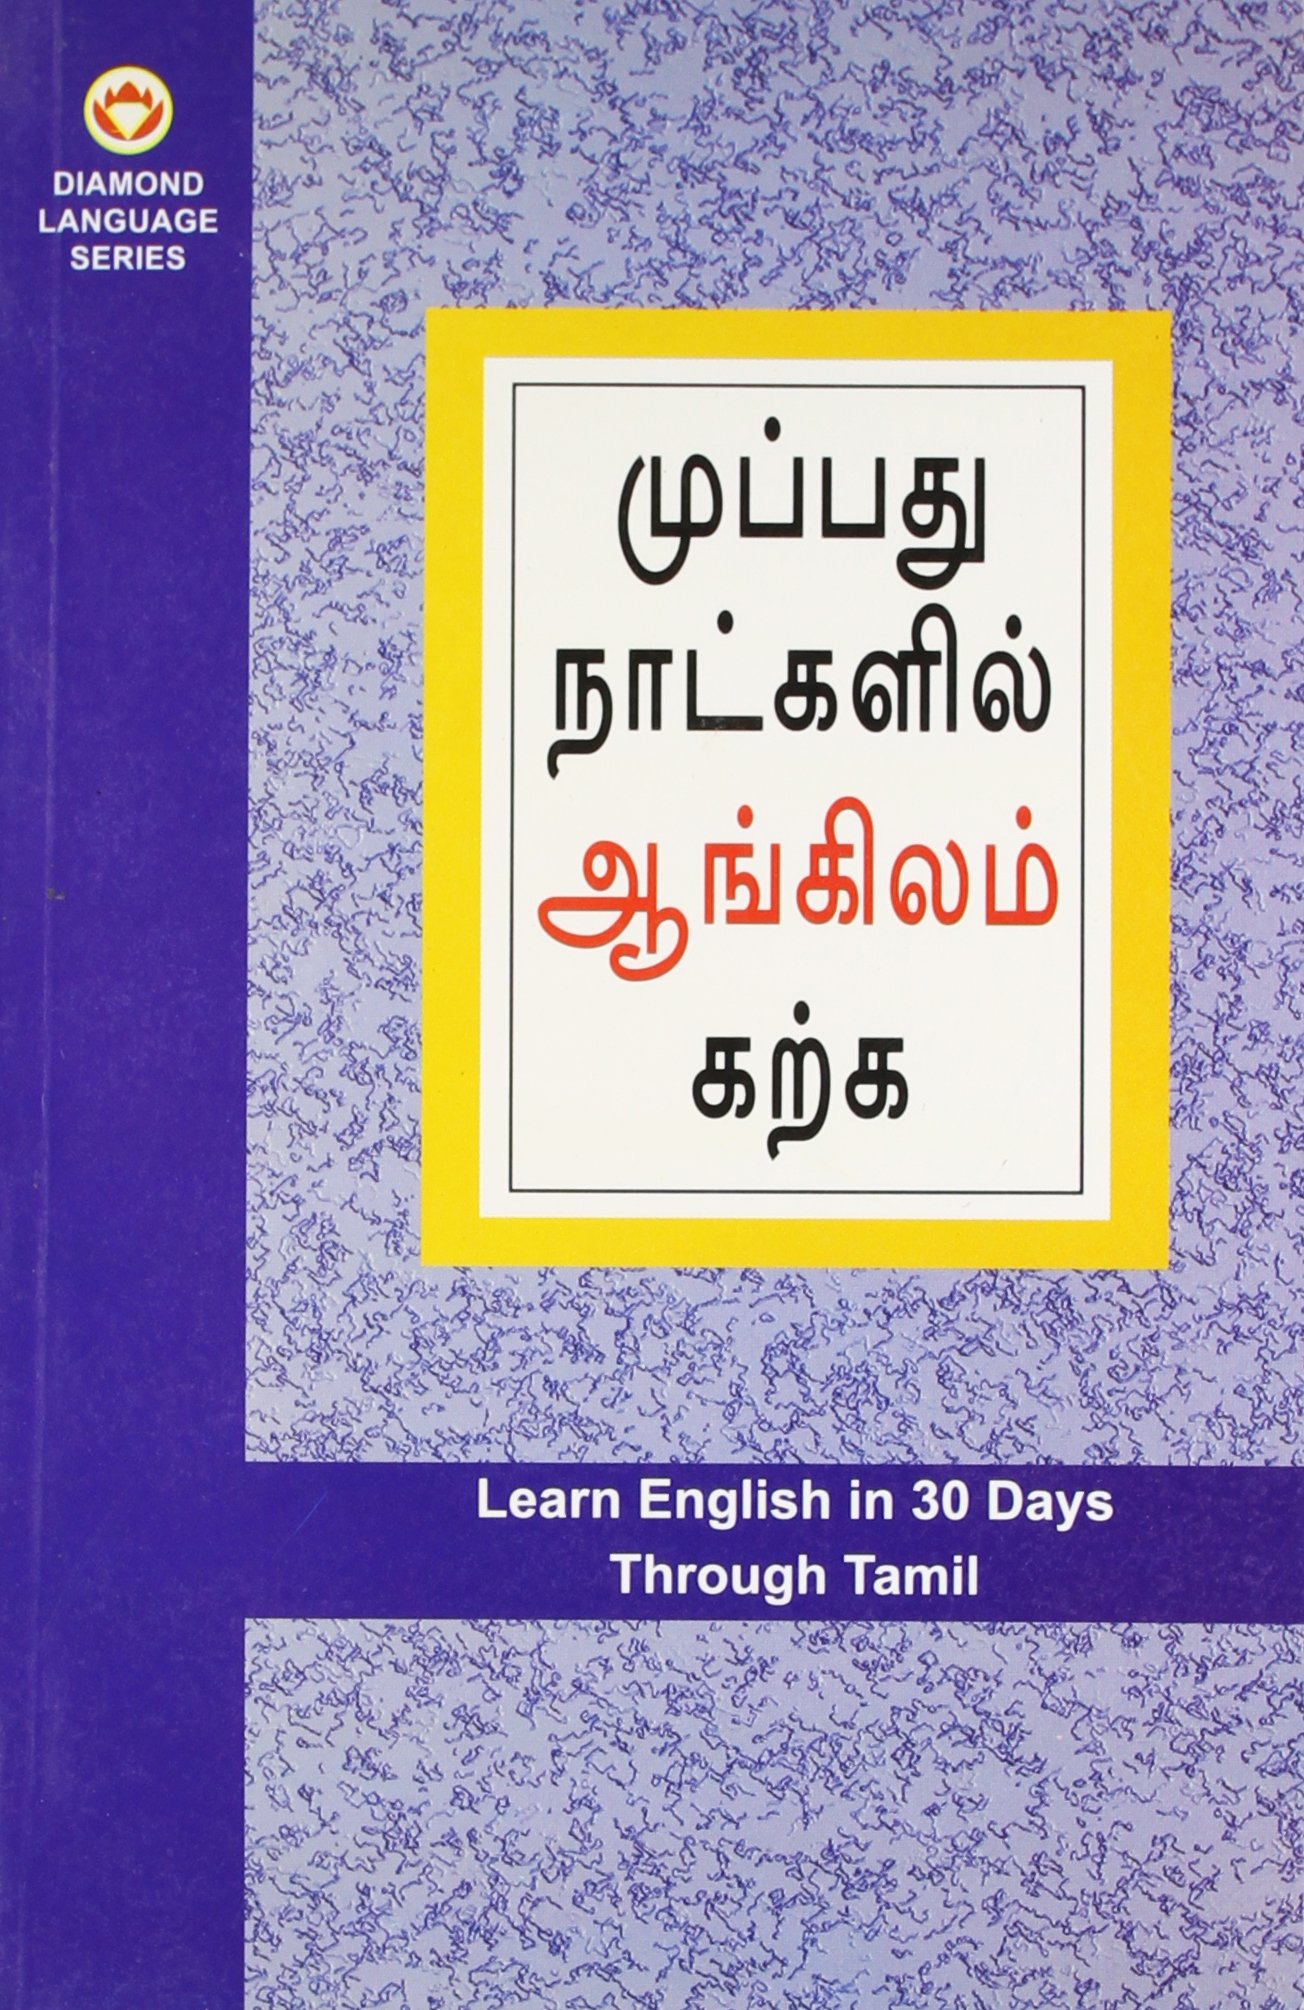 Learn english through tamil book free download pdf aboutlivin.